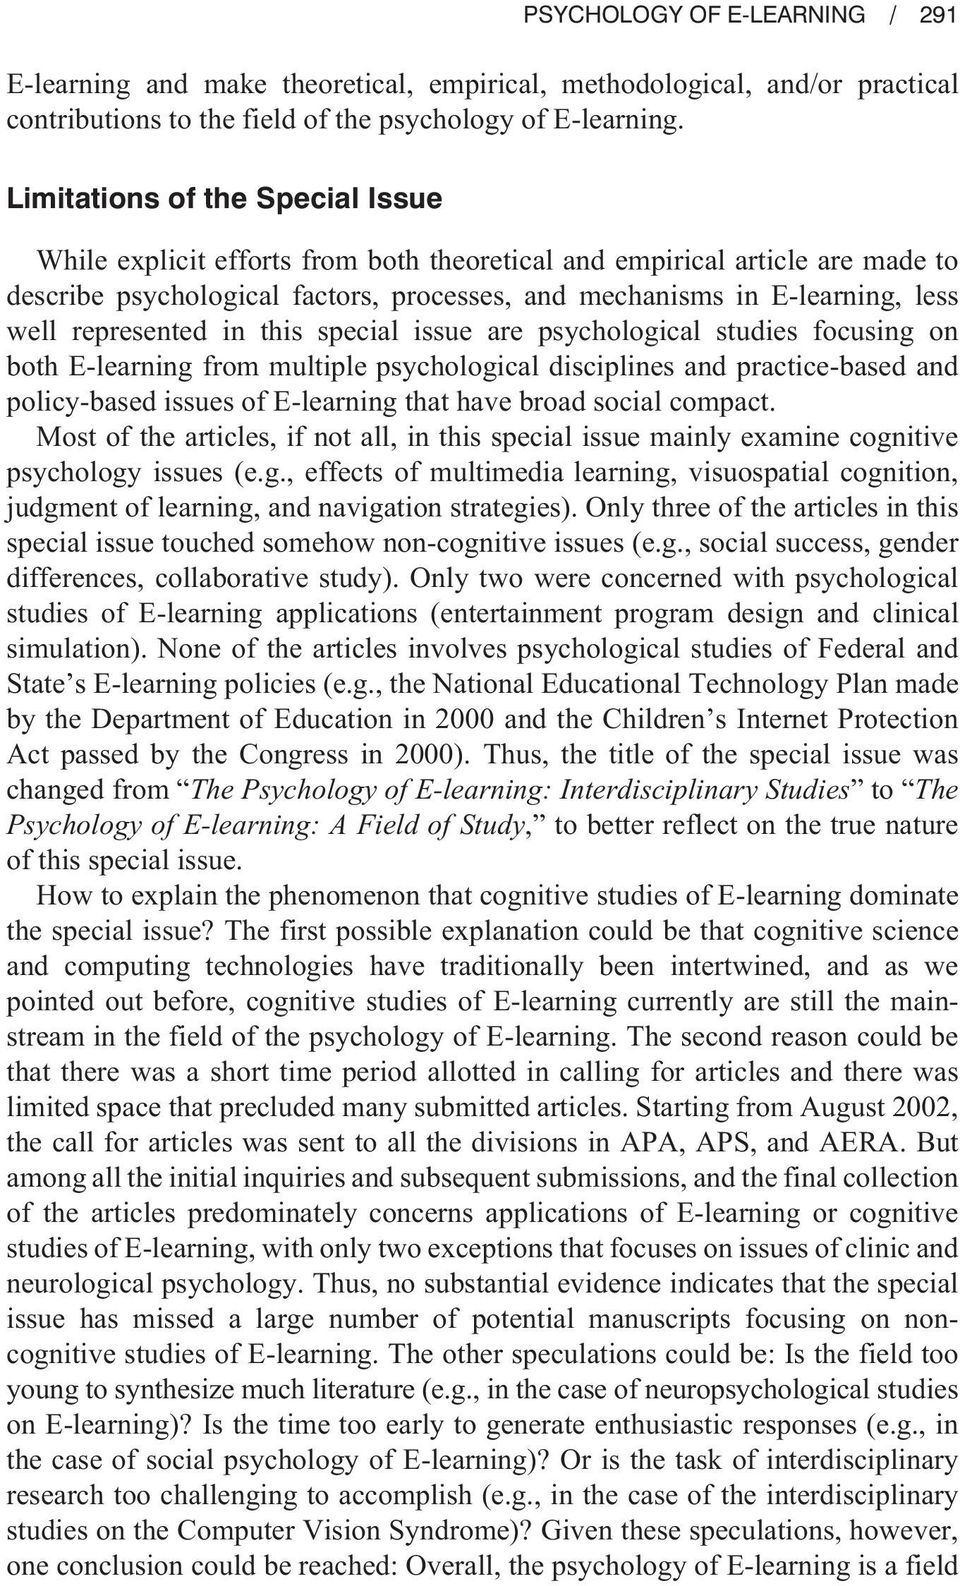 mechanisms in E-learning, less well represented in this special issue are psychological studies focusing on both E-learning from multiple psychological disciplines and practice-based and policy-based